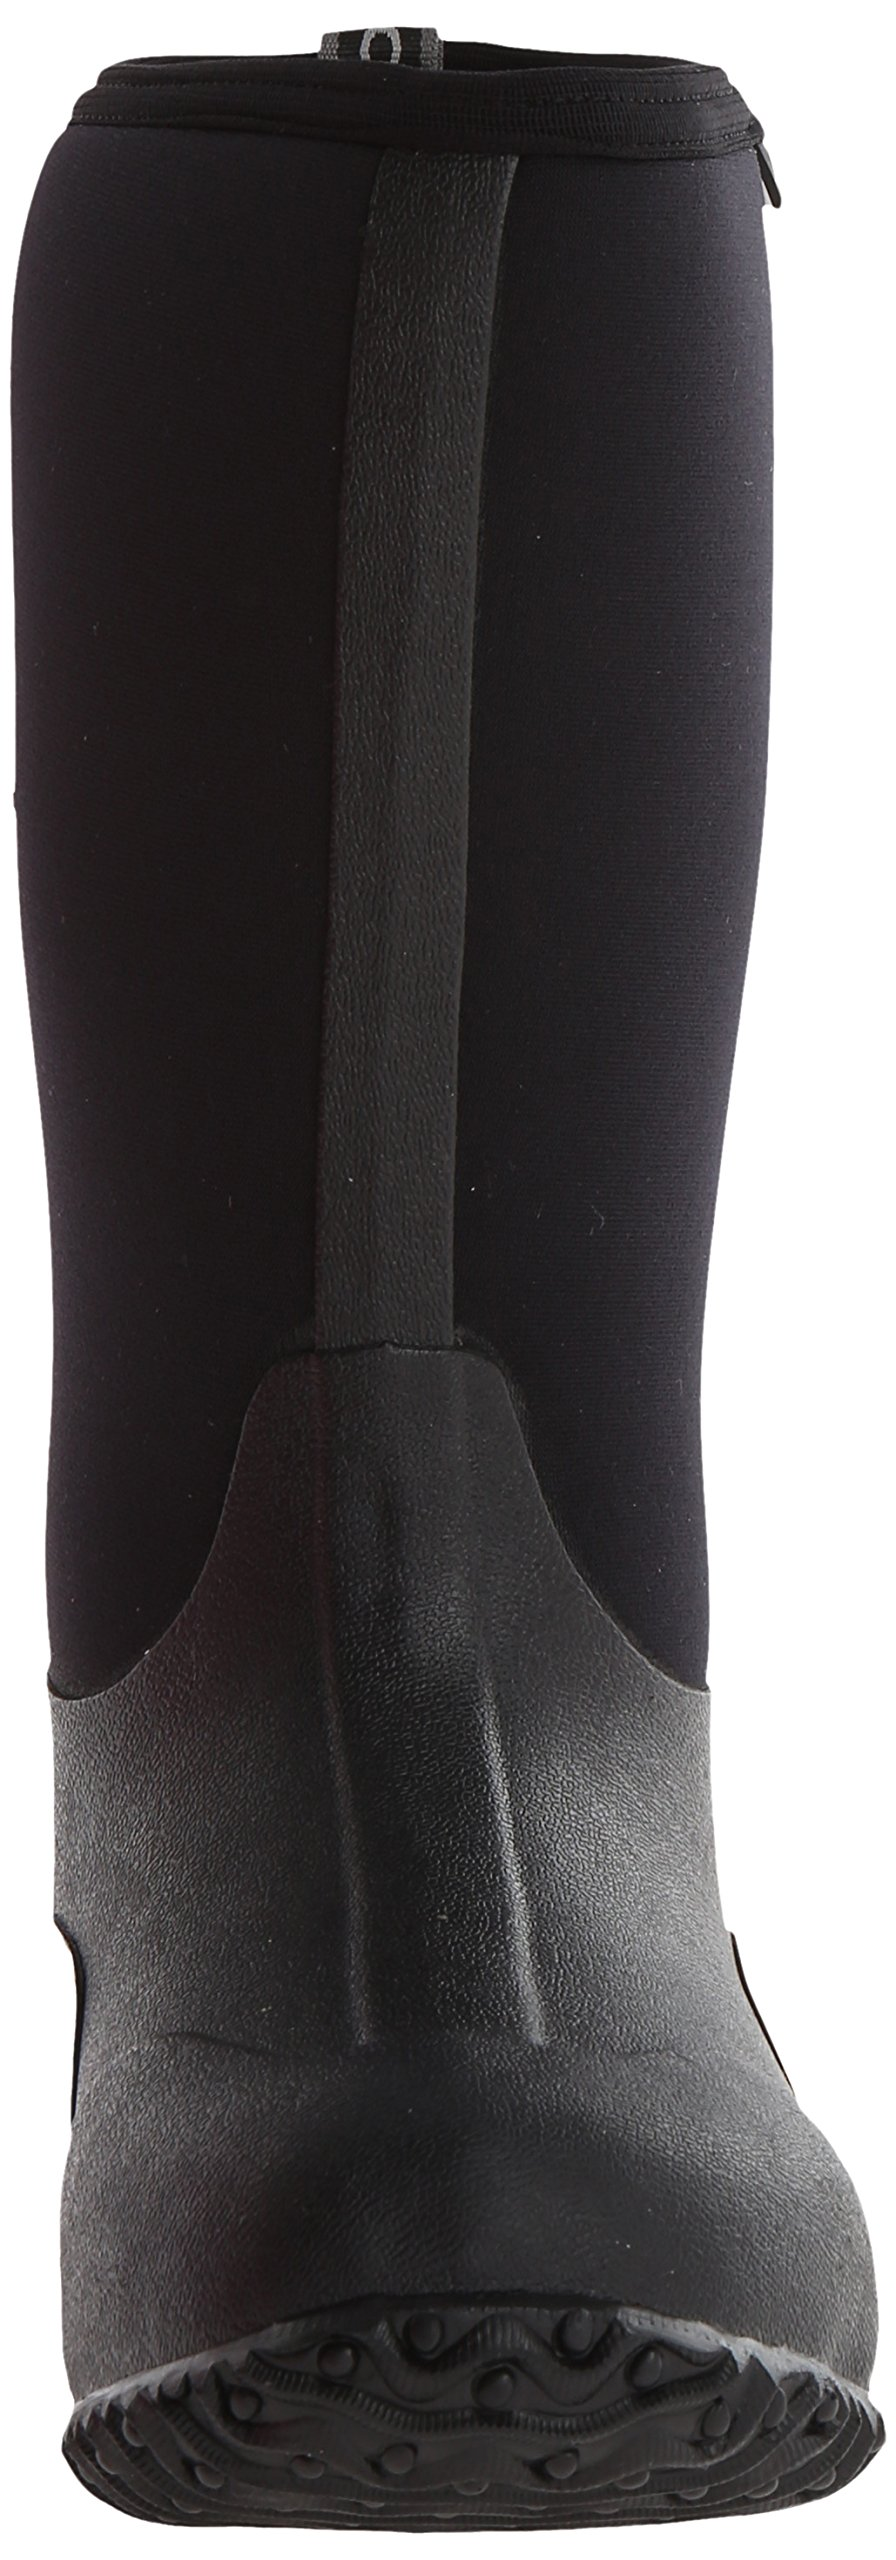 Bogs Classic No Handles Waterproof Insulated Rain Boot (Toddler/Little Kid/Big Kid),  Black, 3 M US Little Kid by Bogs (Image #5)